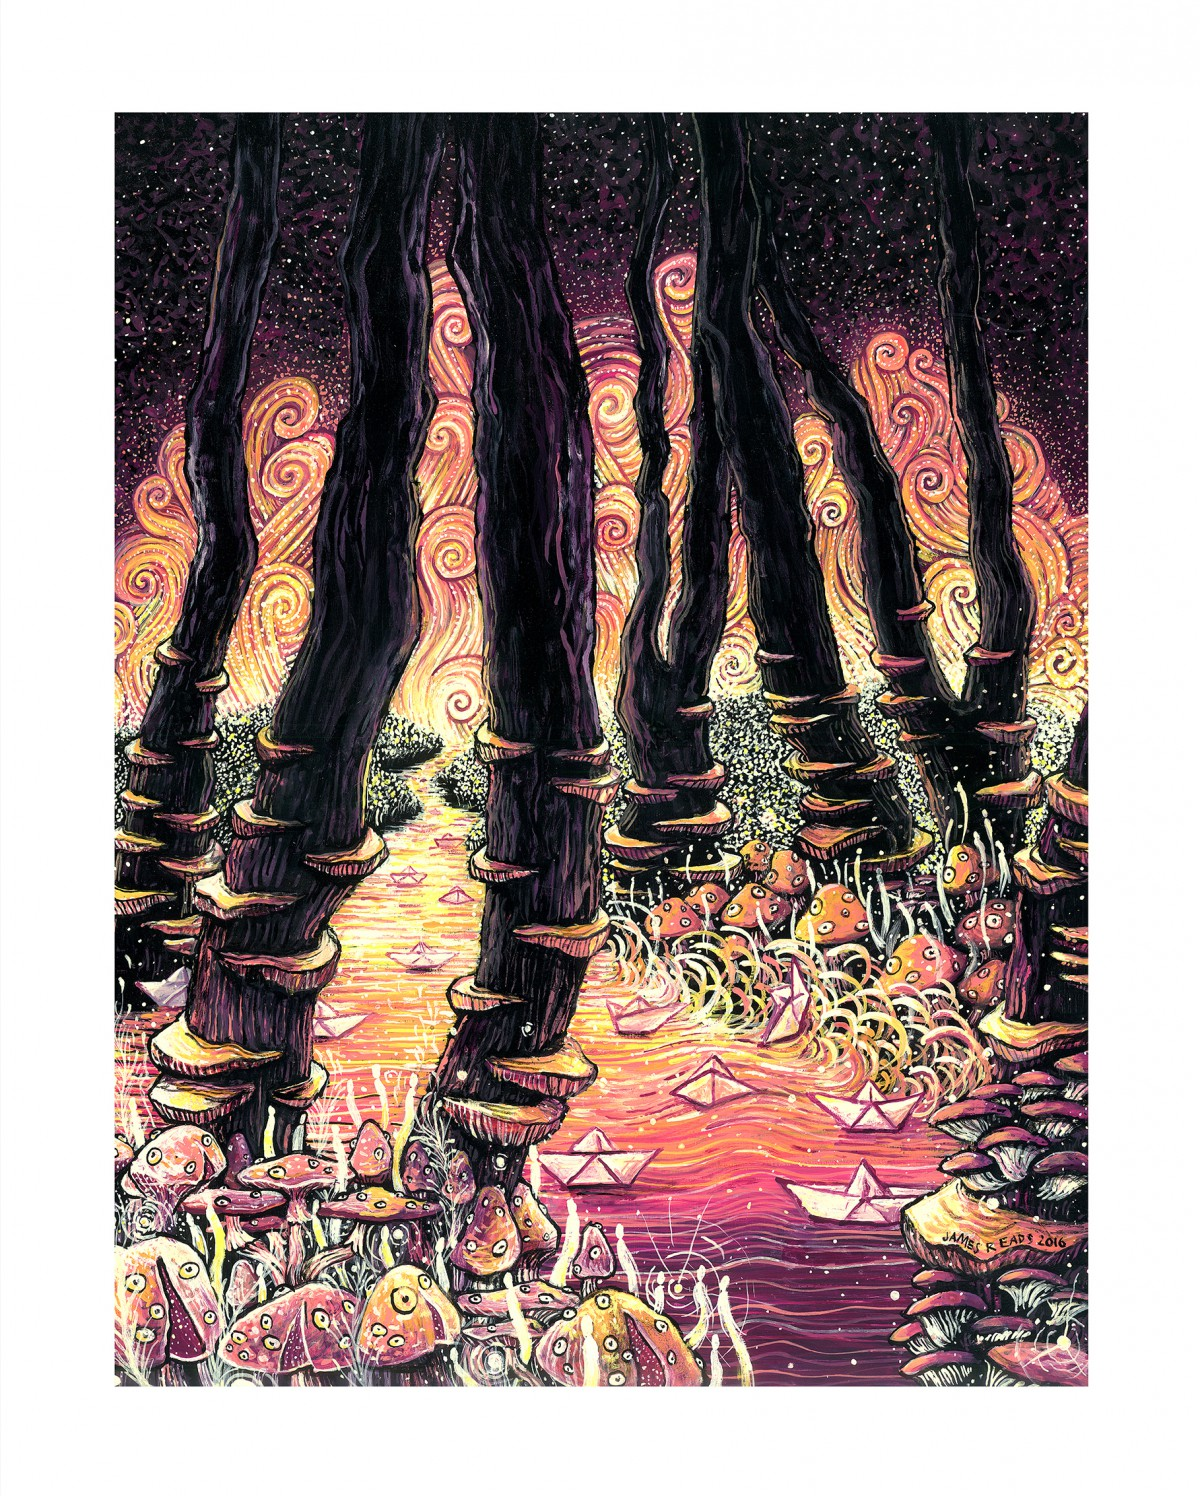 """Mushroom Party"" by James R Eads.  16"" x 20"" Giclee.  Ed of 50 S/N. $50"